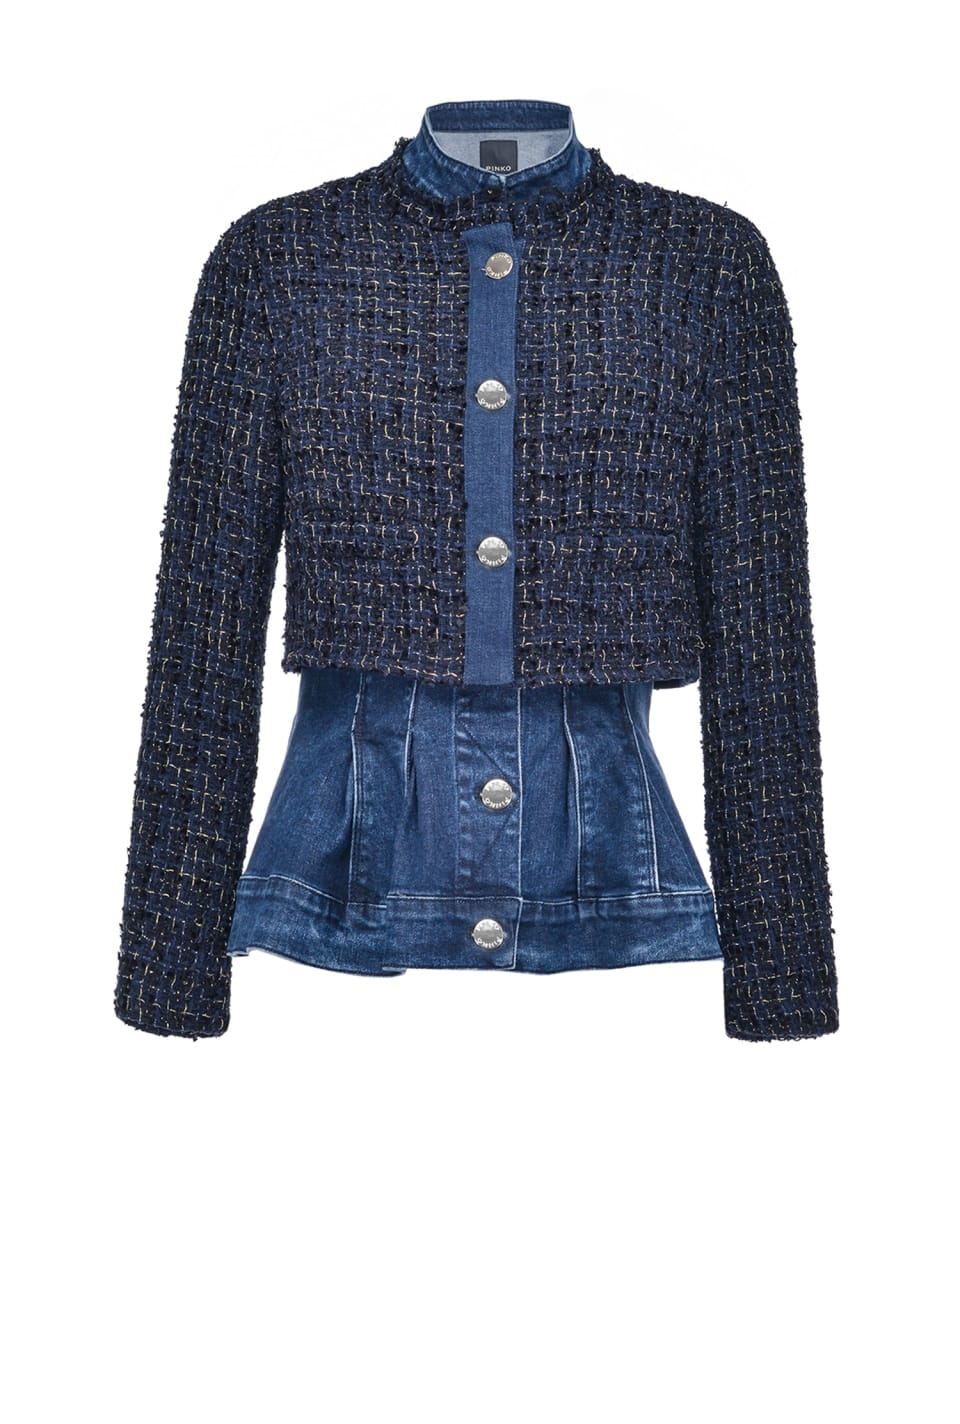 Two-piece jacket in denim and tweed - Pinko